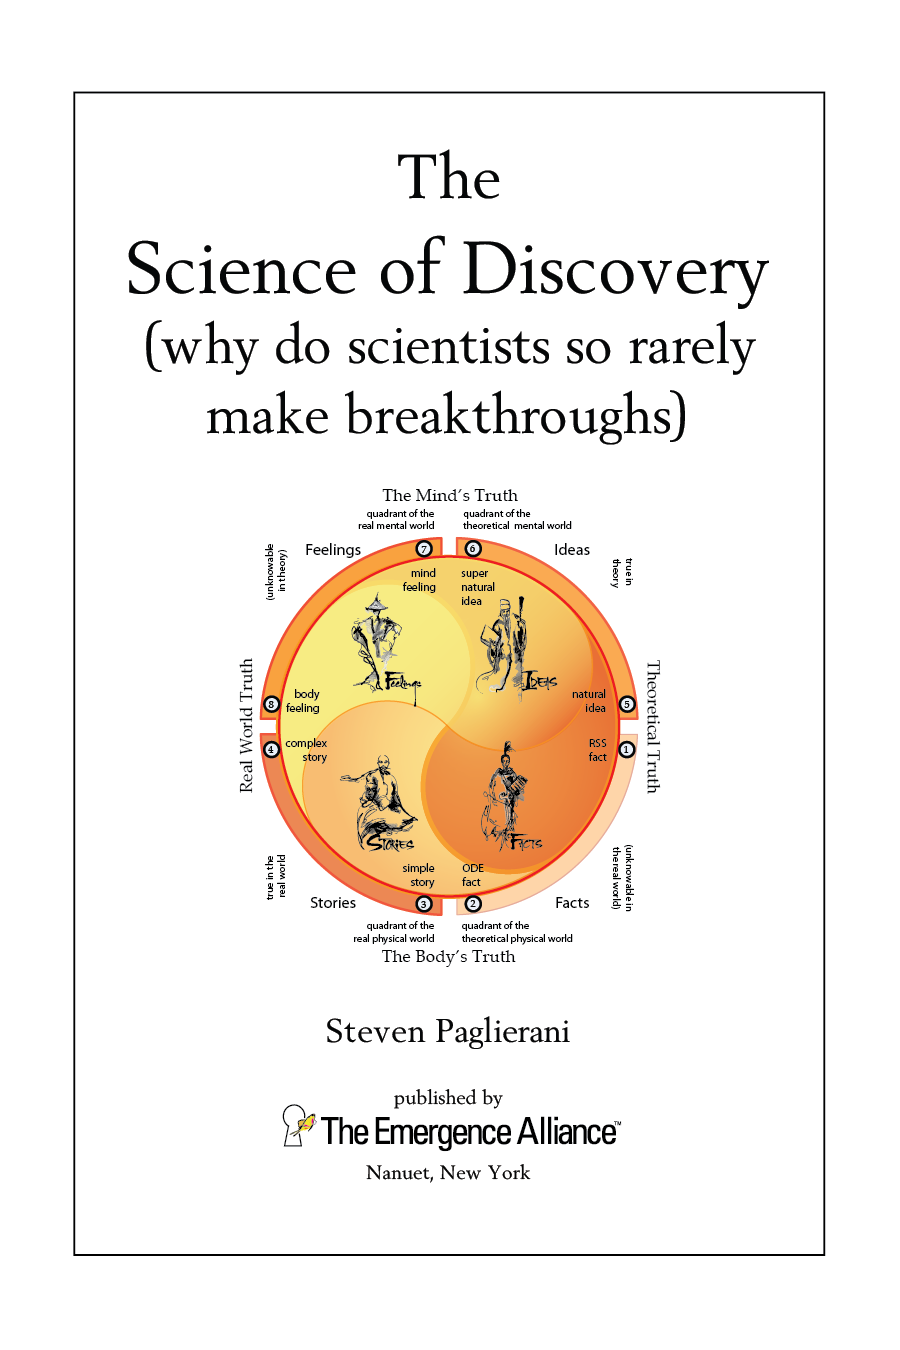 The Science of Discovery: Title Page